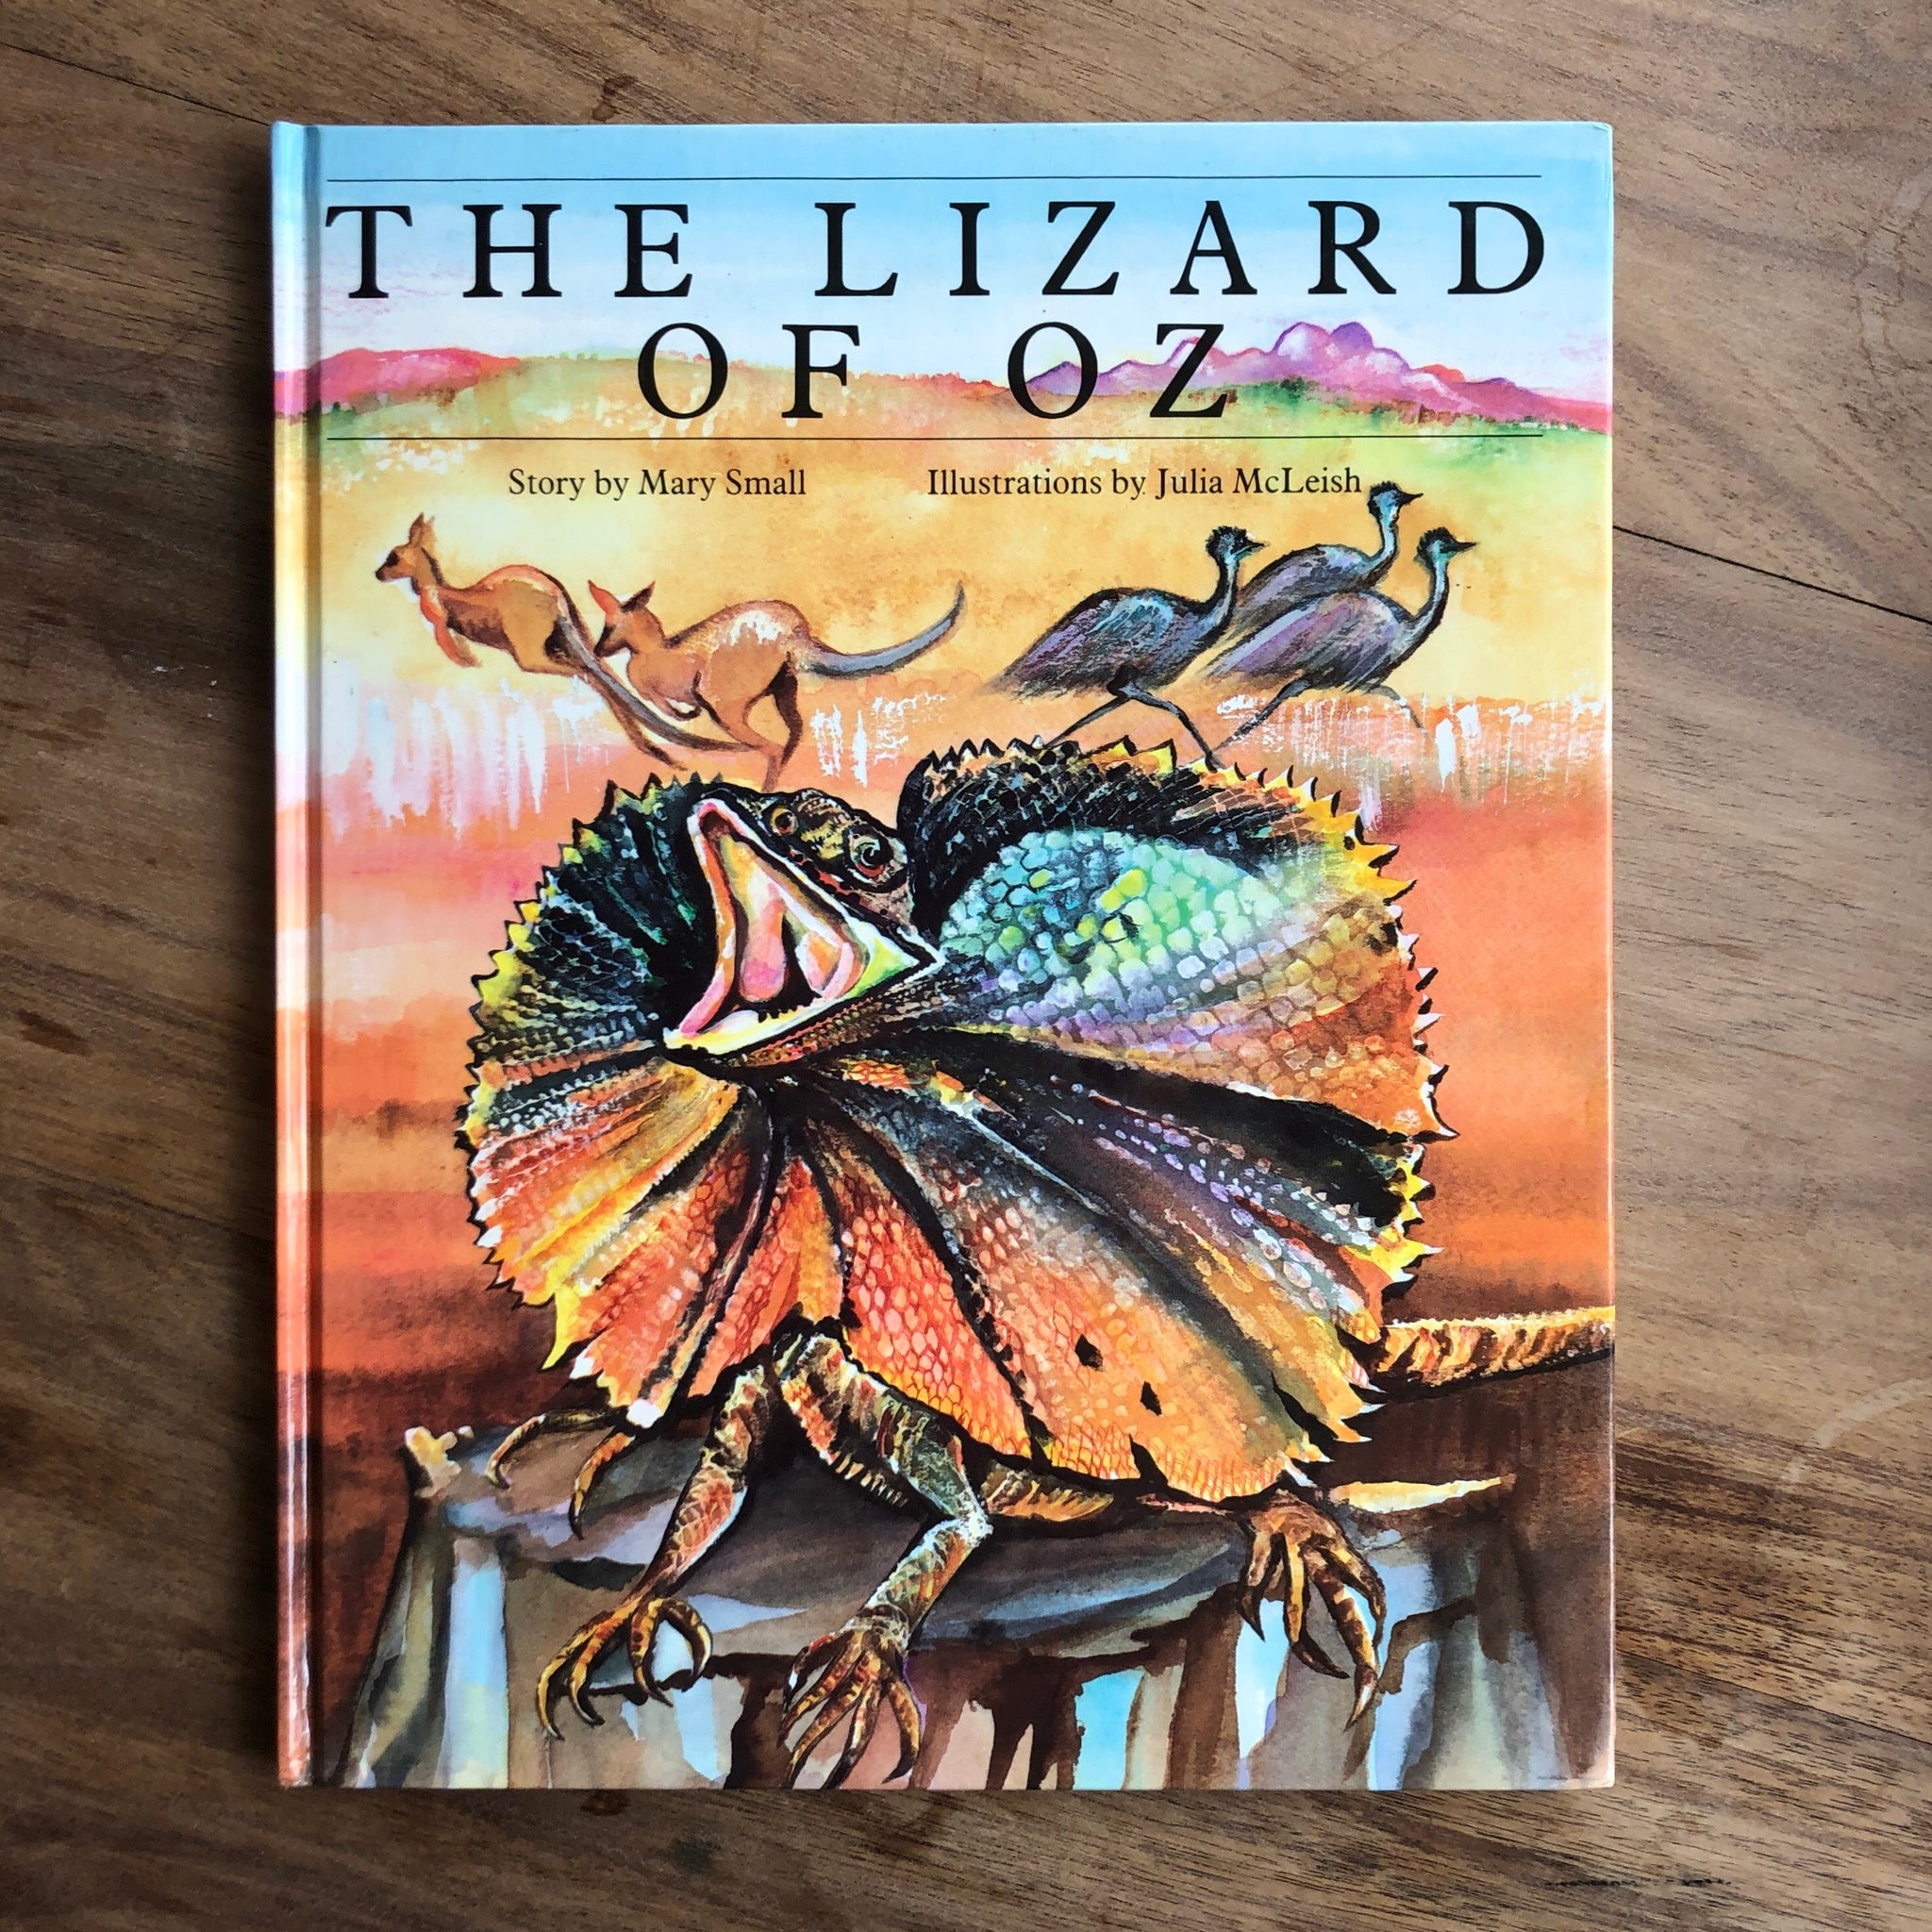 The Lizard of Oz by Mary Small